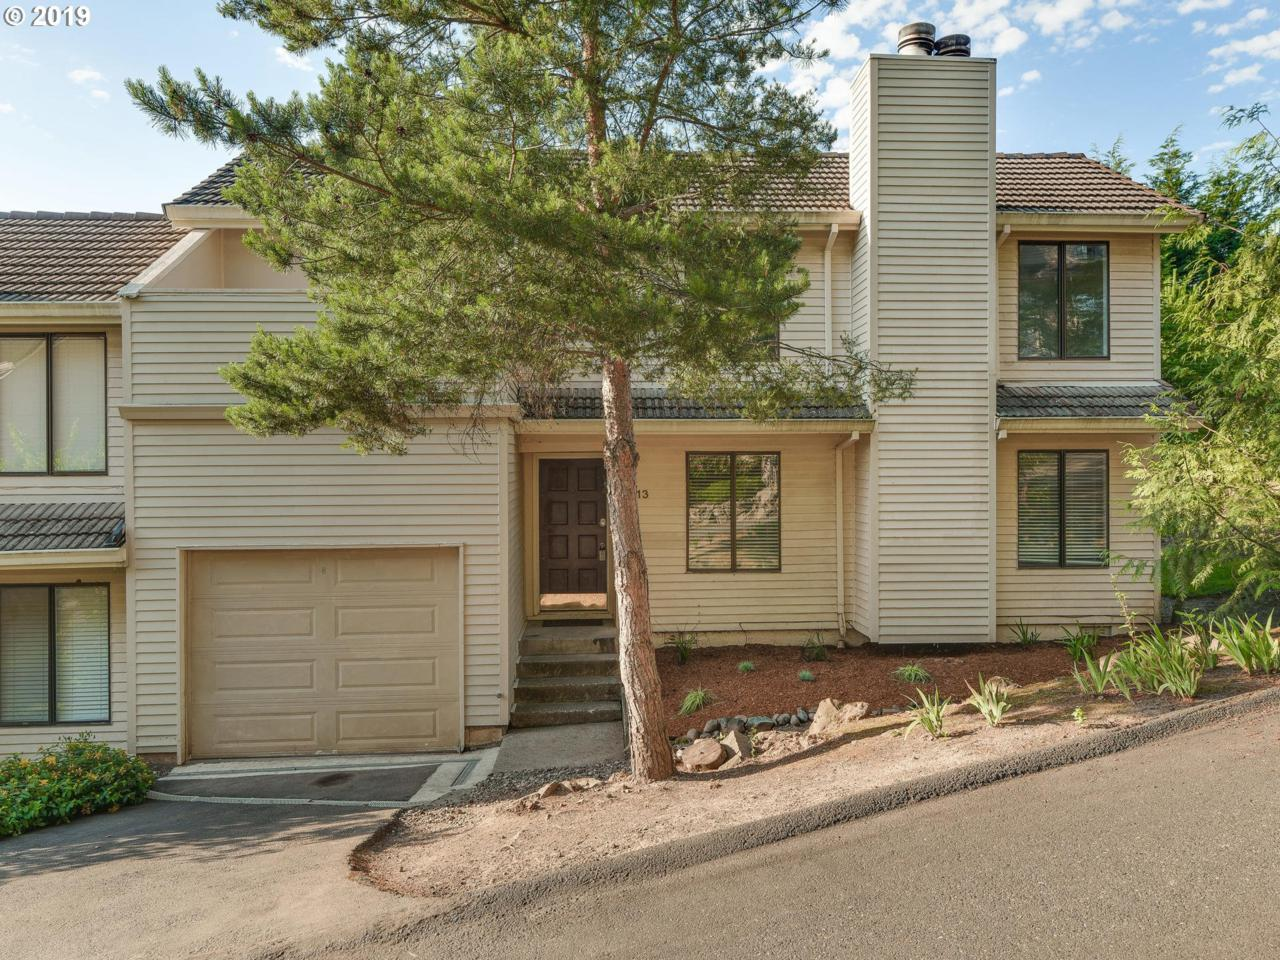 12415 Haskell Ct - Photo 1